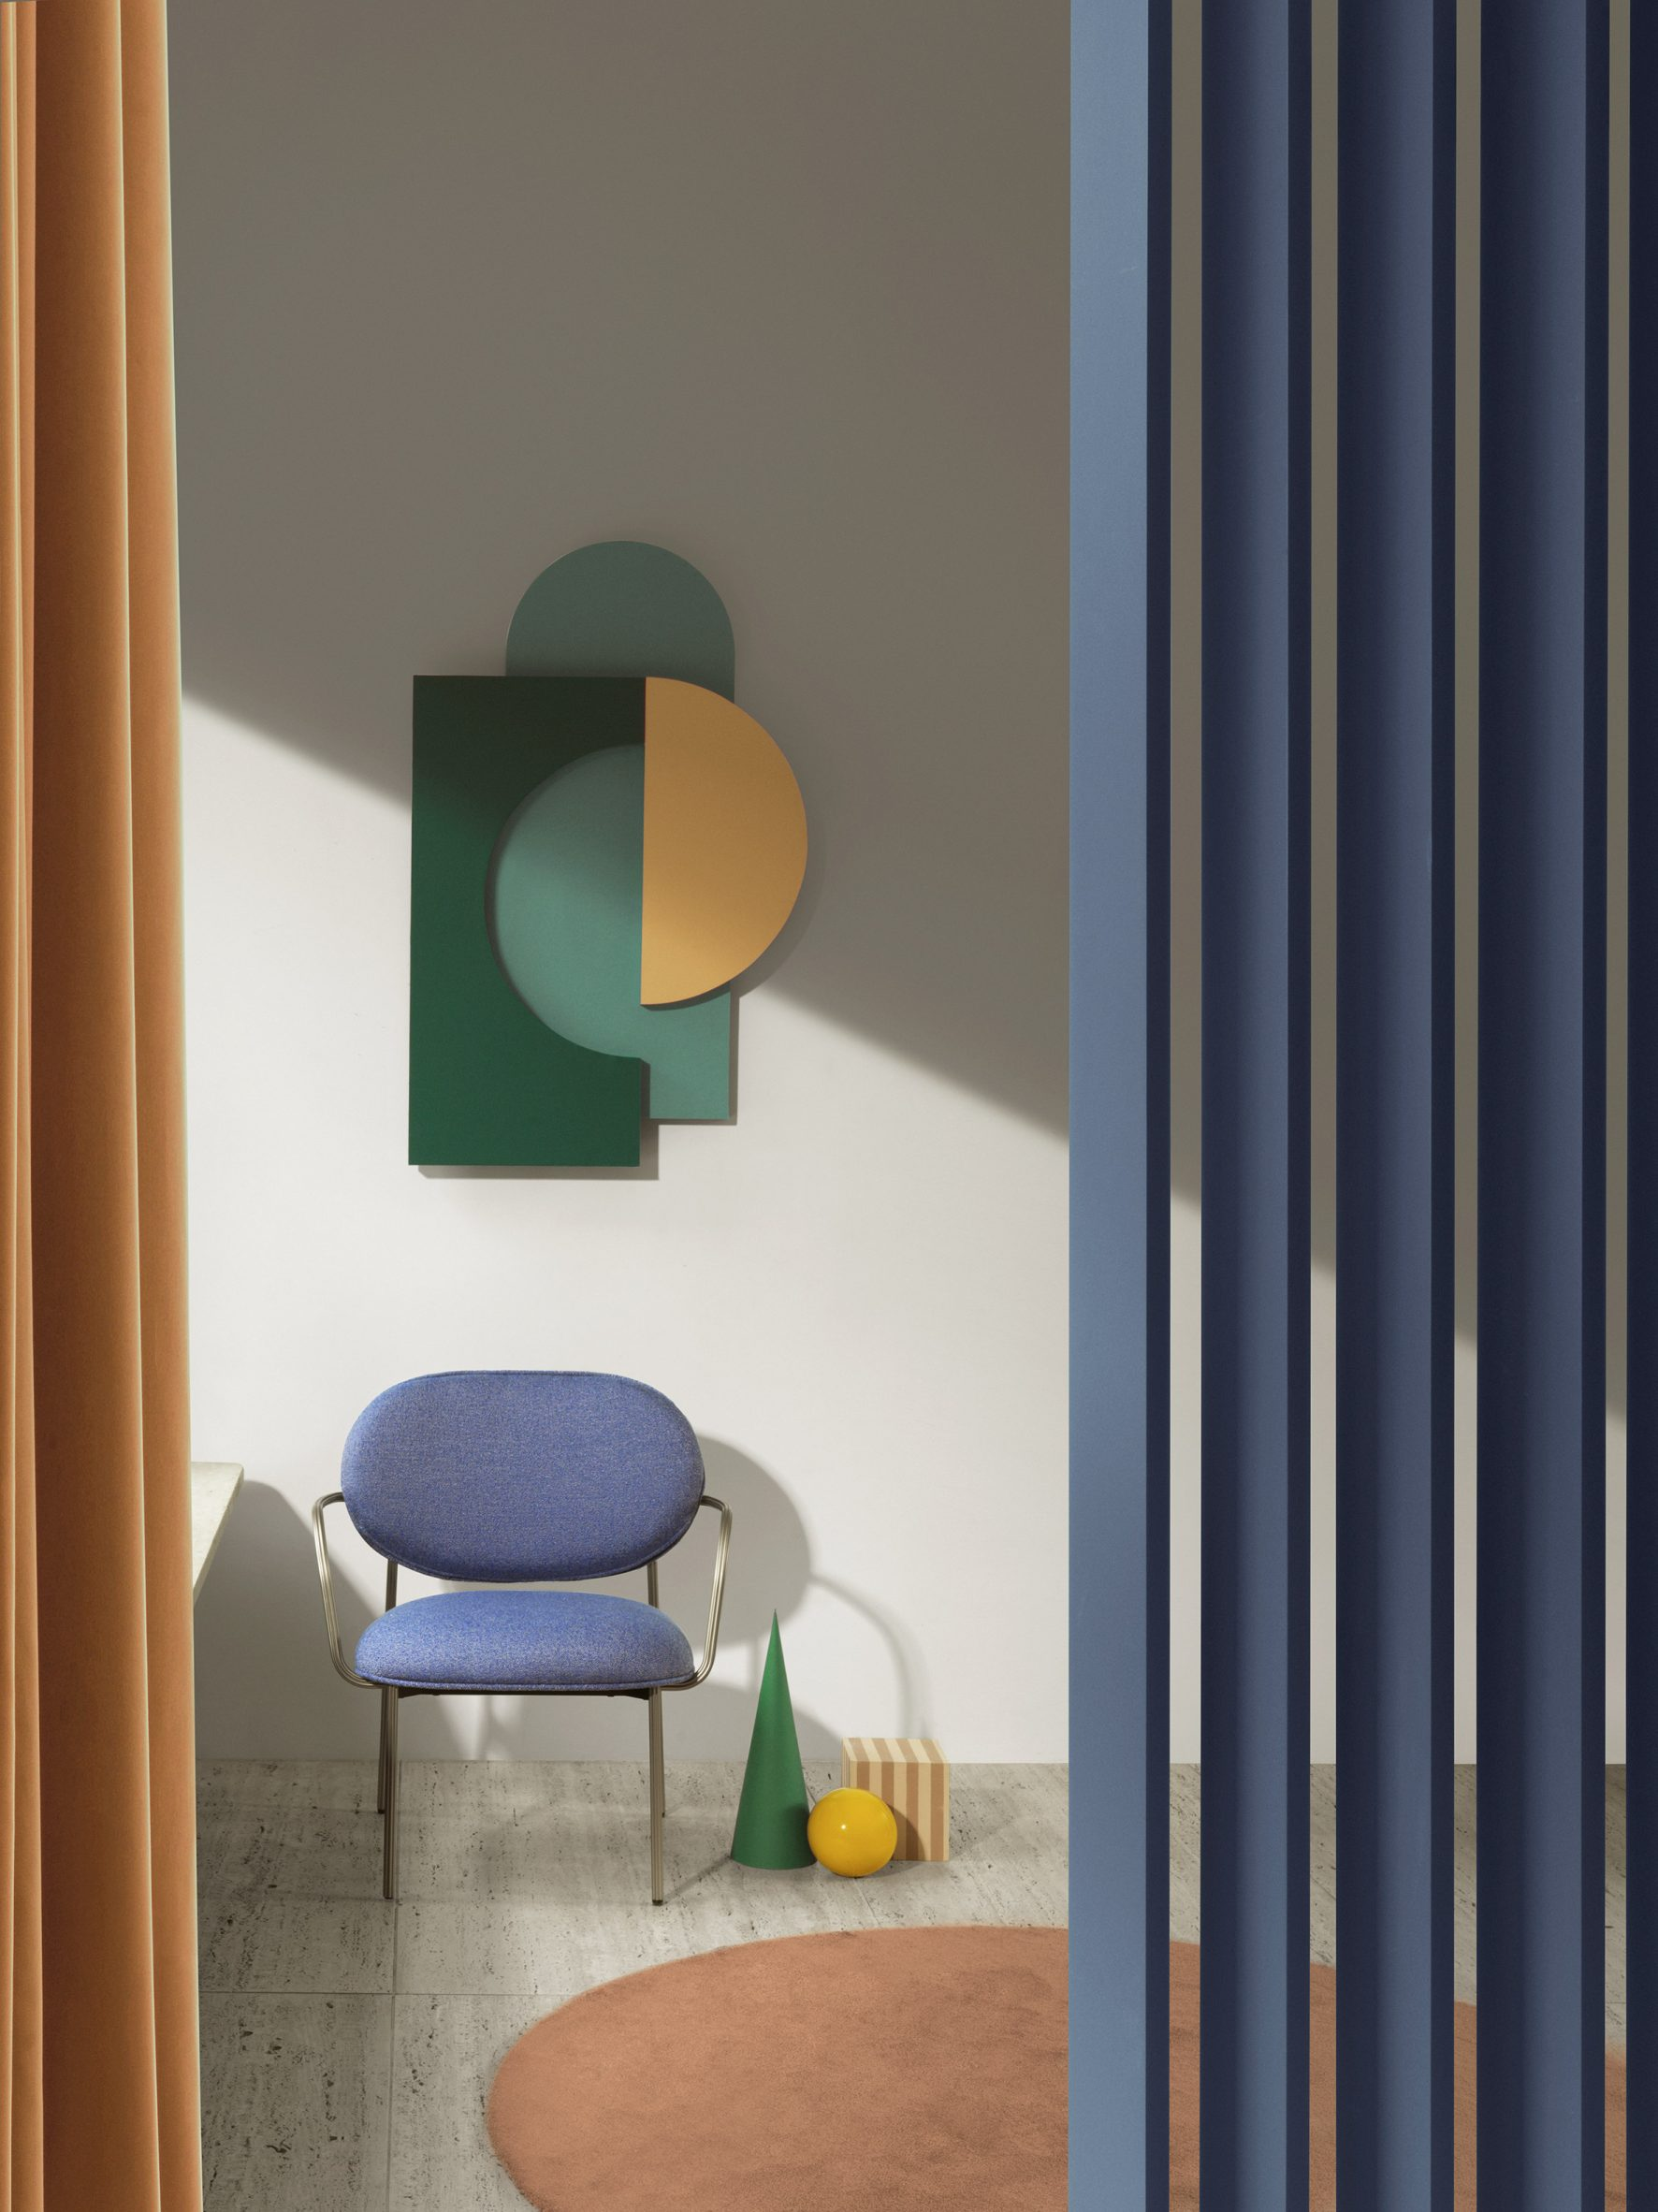 Installation featuring Blume lounge armchair by Sebastian Herkner for Pedrali in blue